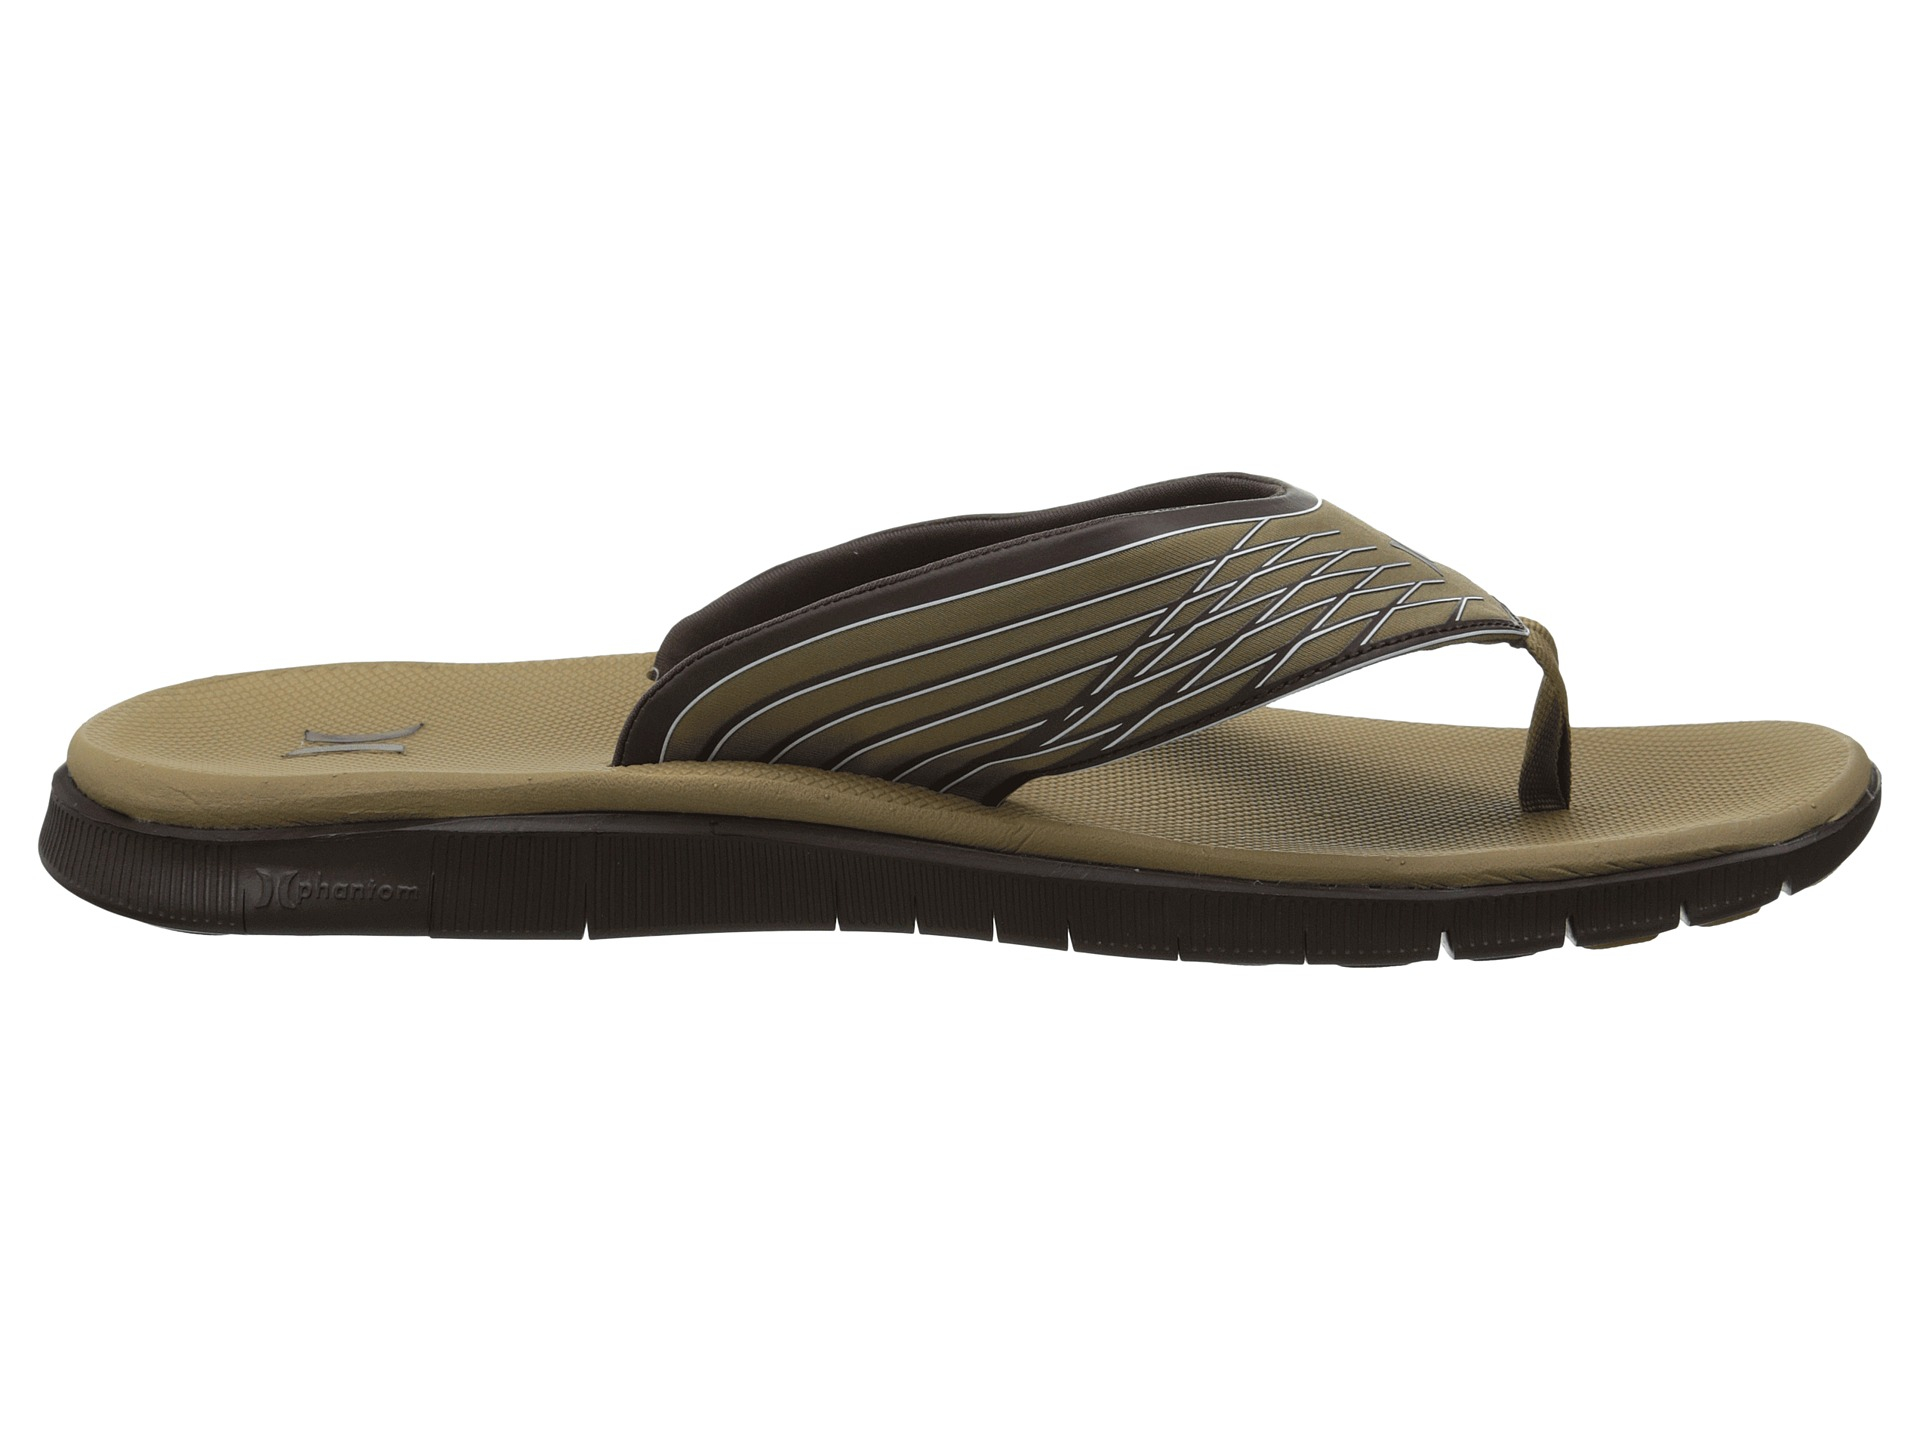 ec75ee75e742 Lyst - Hurley Phantom Sandal in Brown for Men